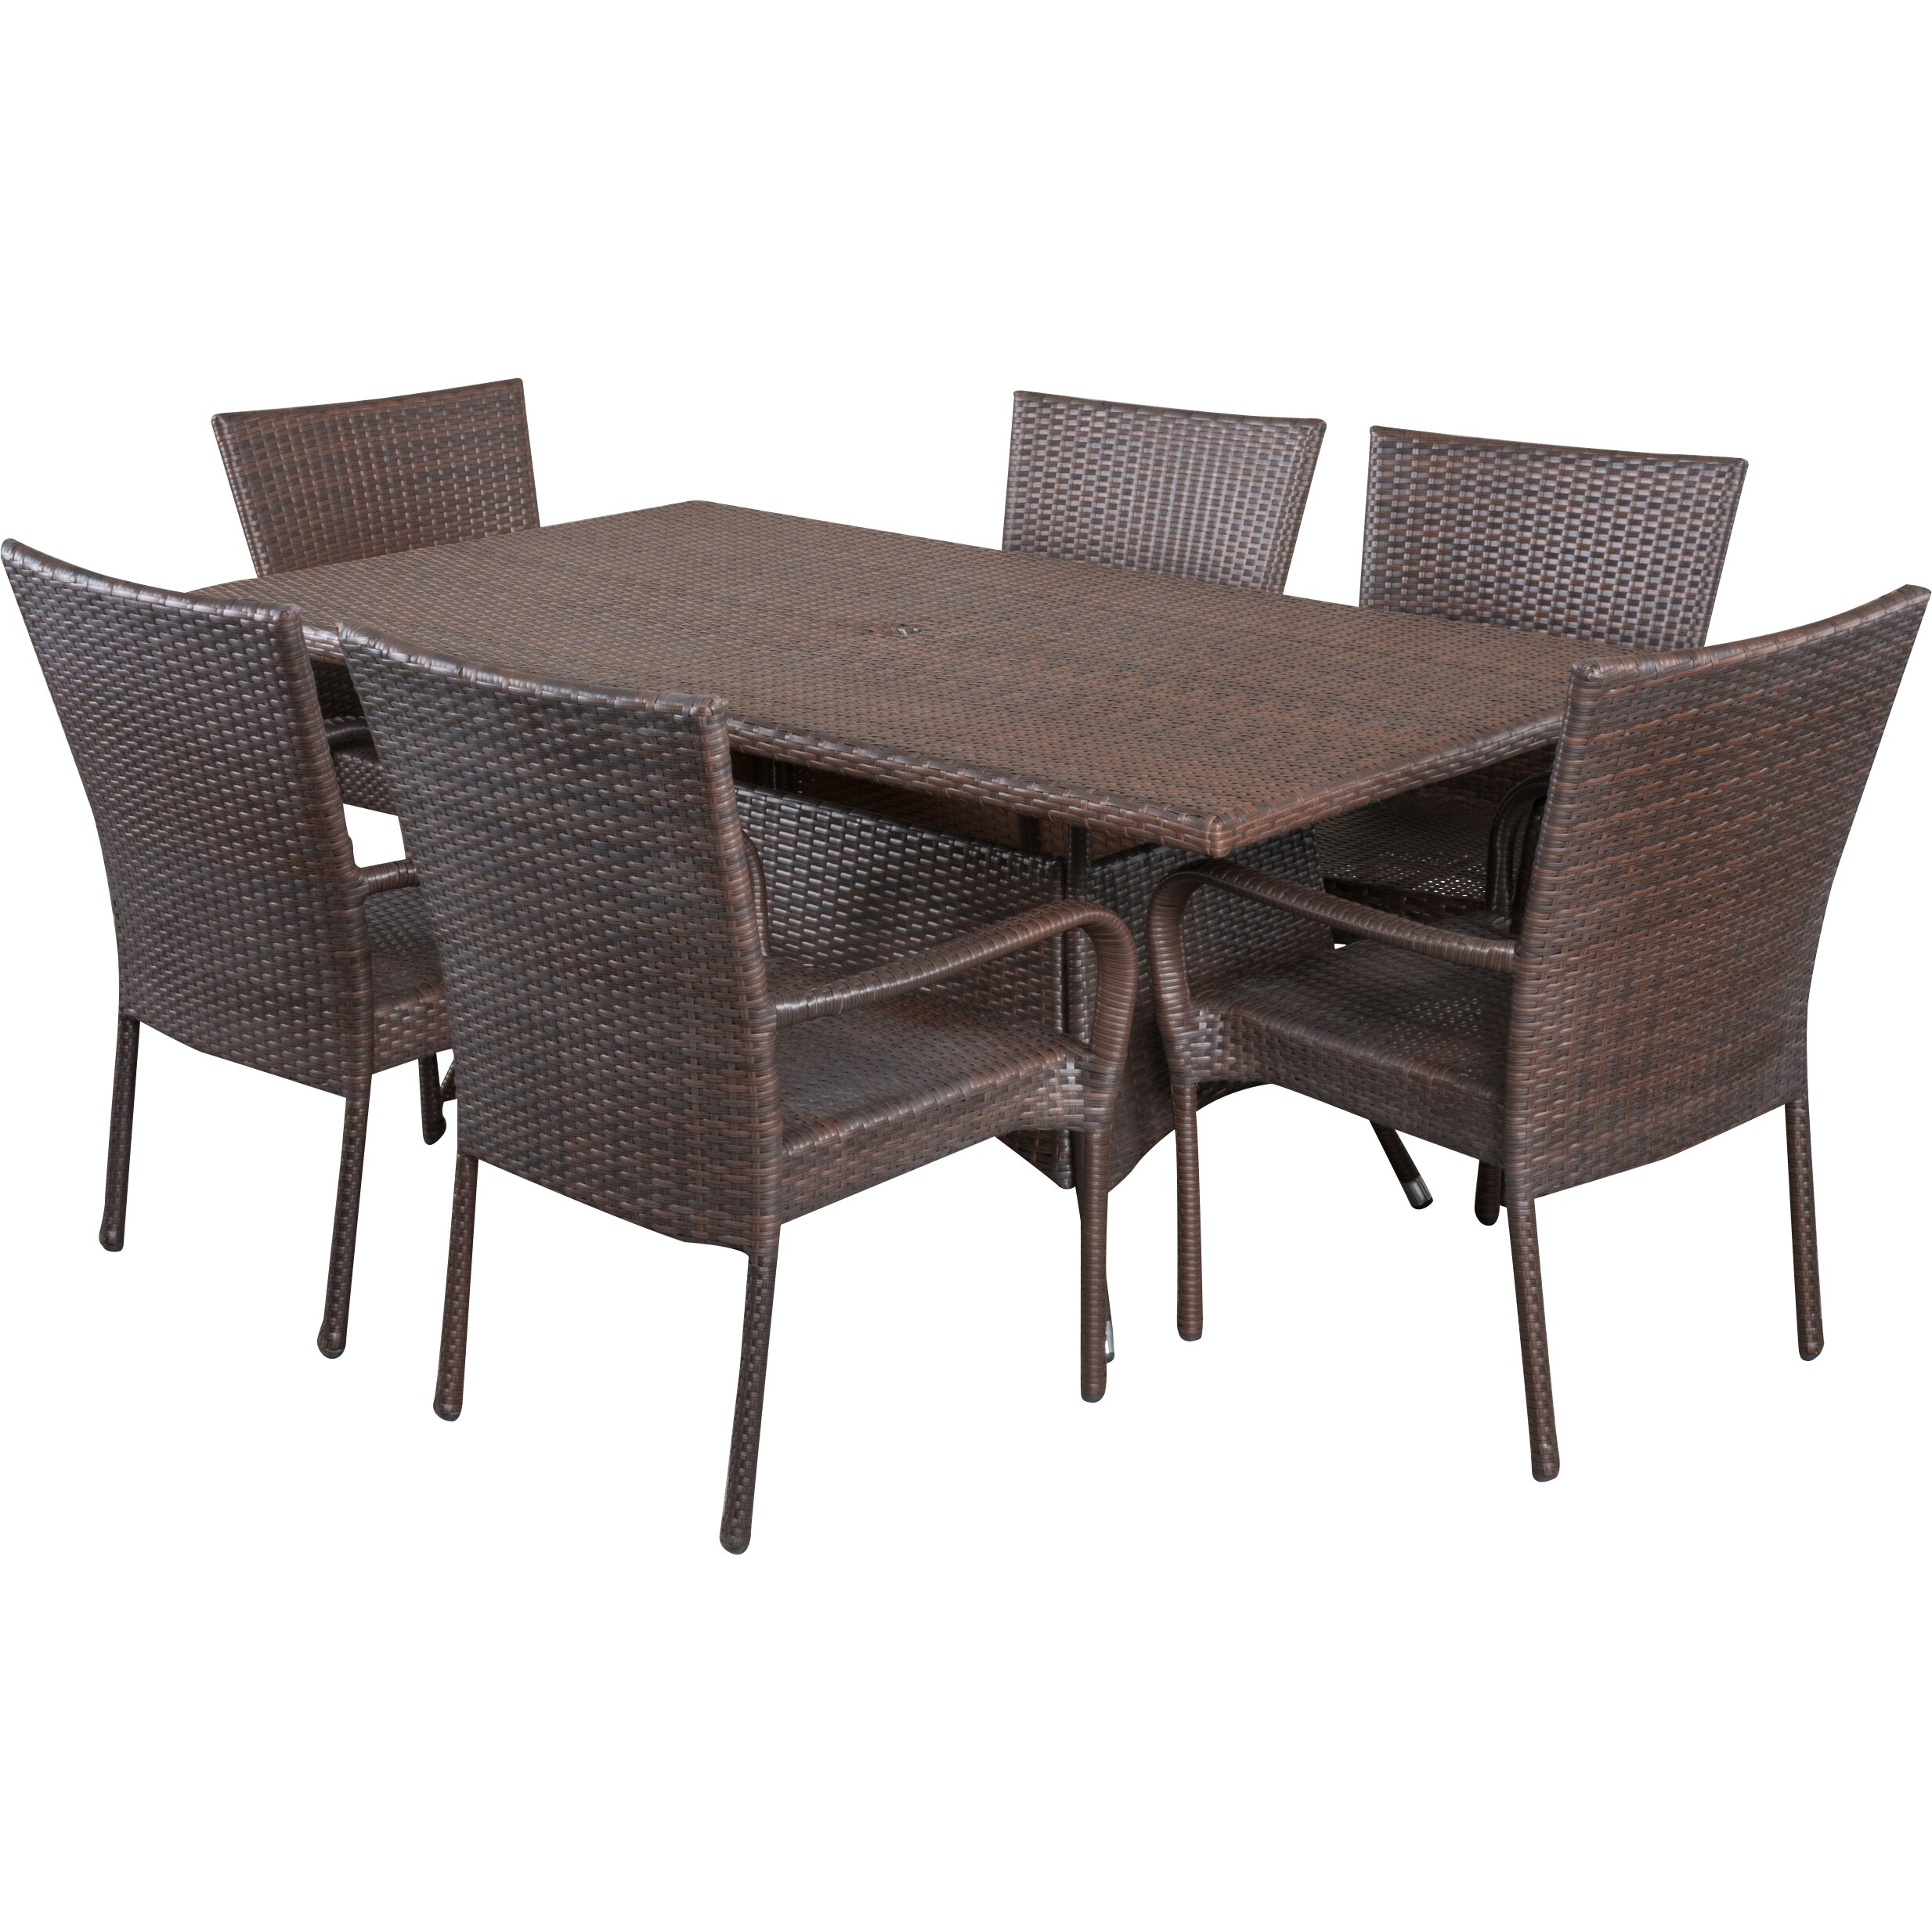 Very Impressive portraiture of Alcott Hill Fort Smith 7 Piece Dining Set & Reviews Wayfair with #6B5953 color and 2467x2467 pixels